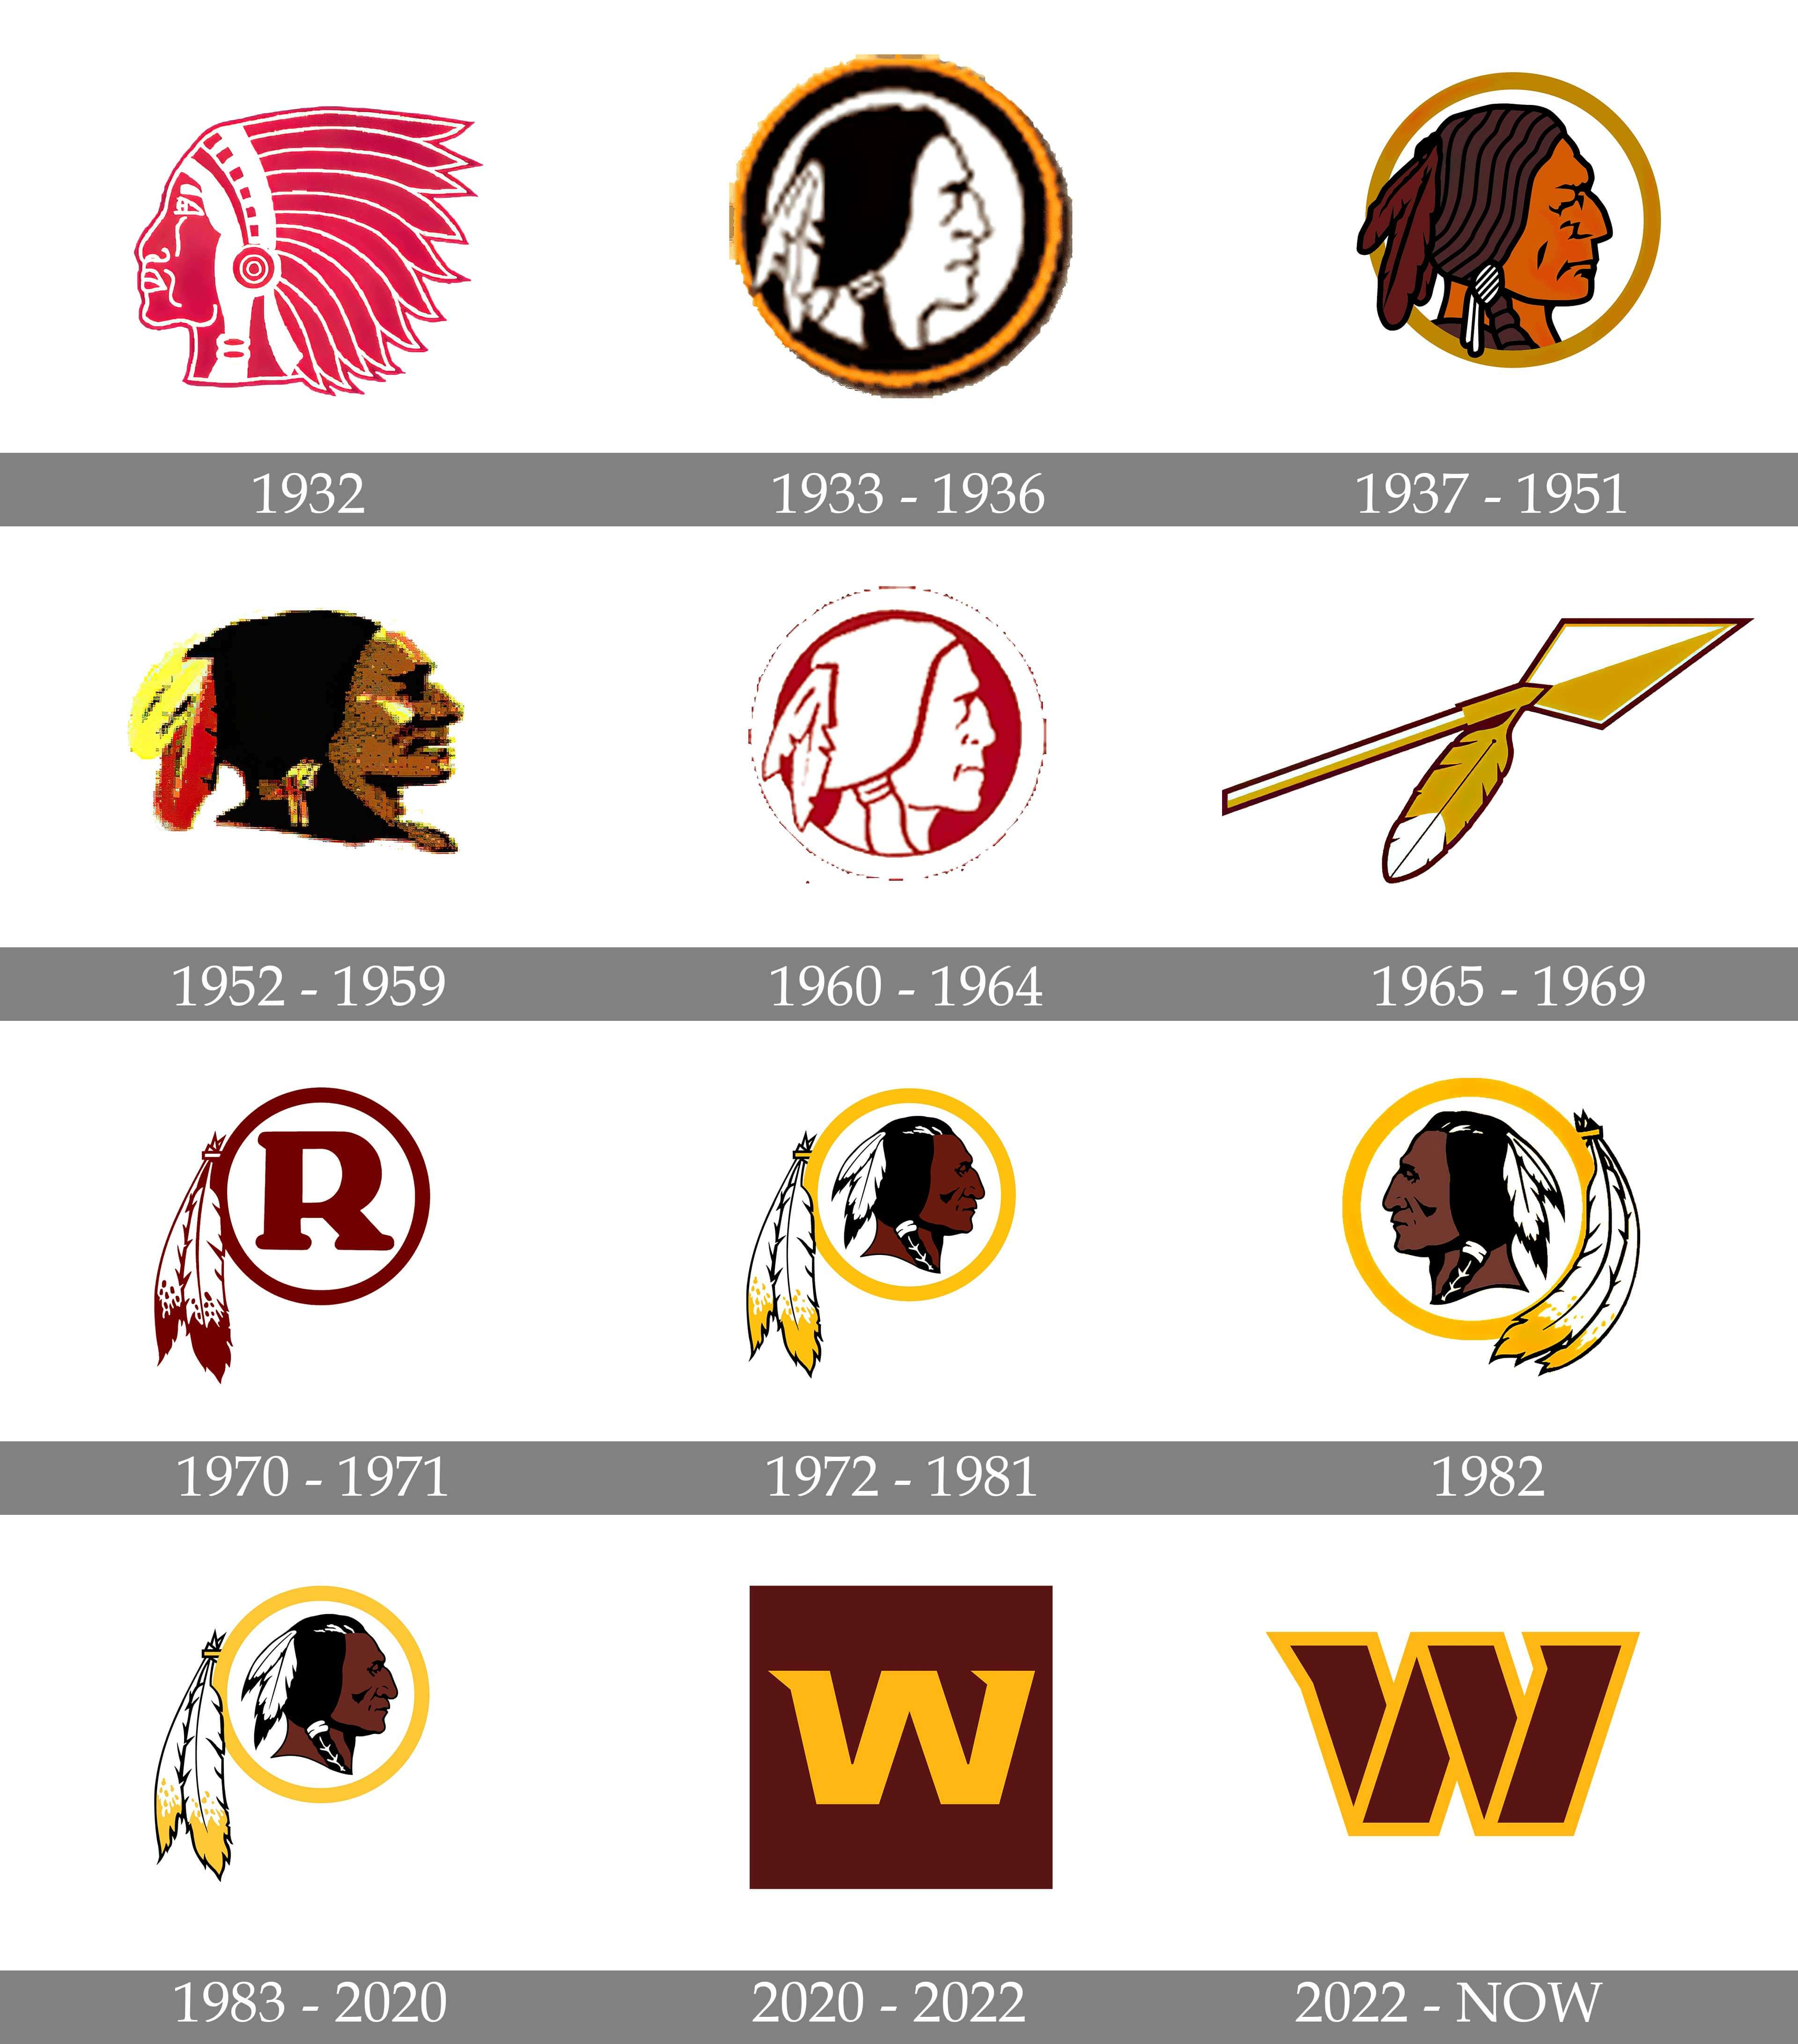 Washington Redskins logo and symbol, meaning, history, PNG